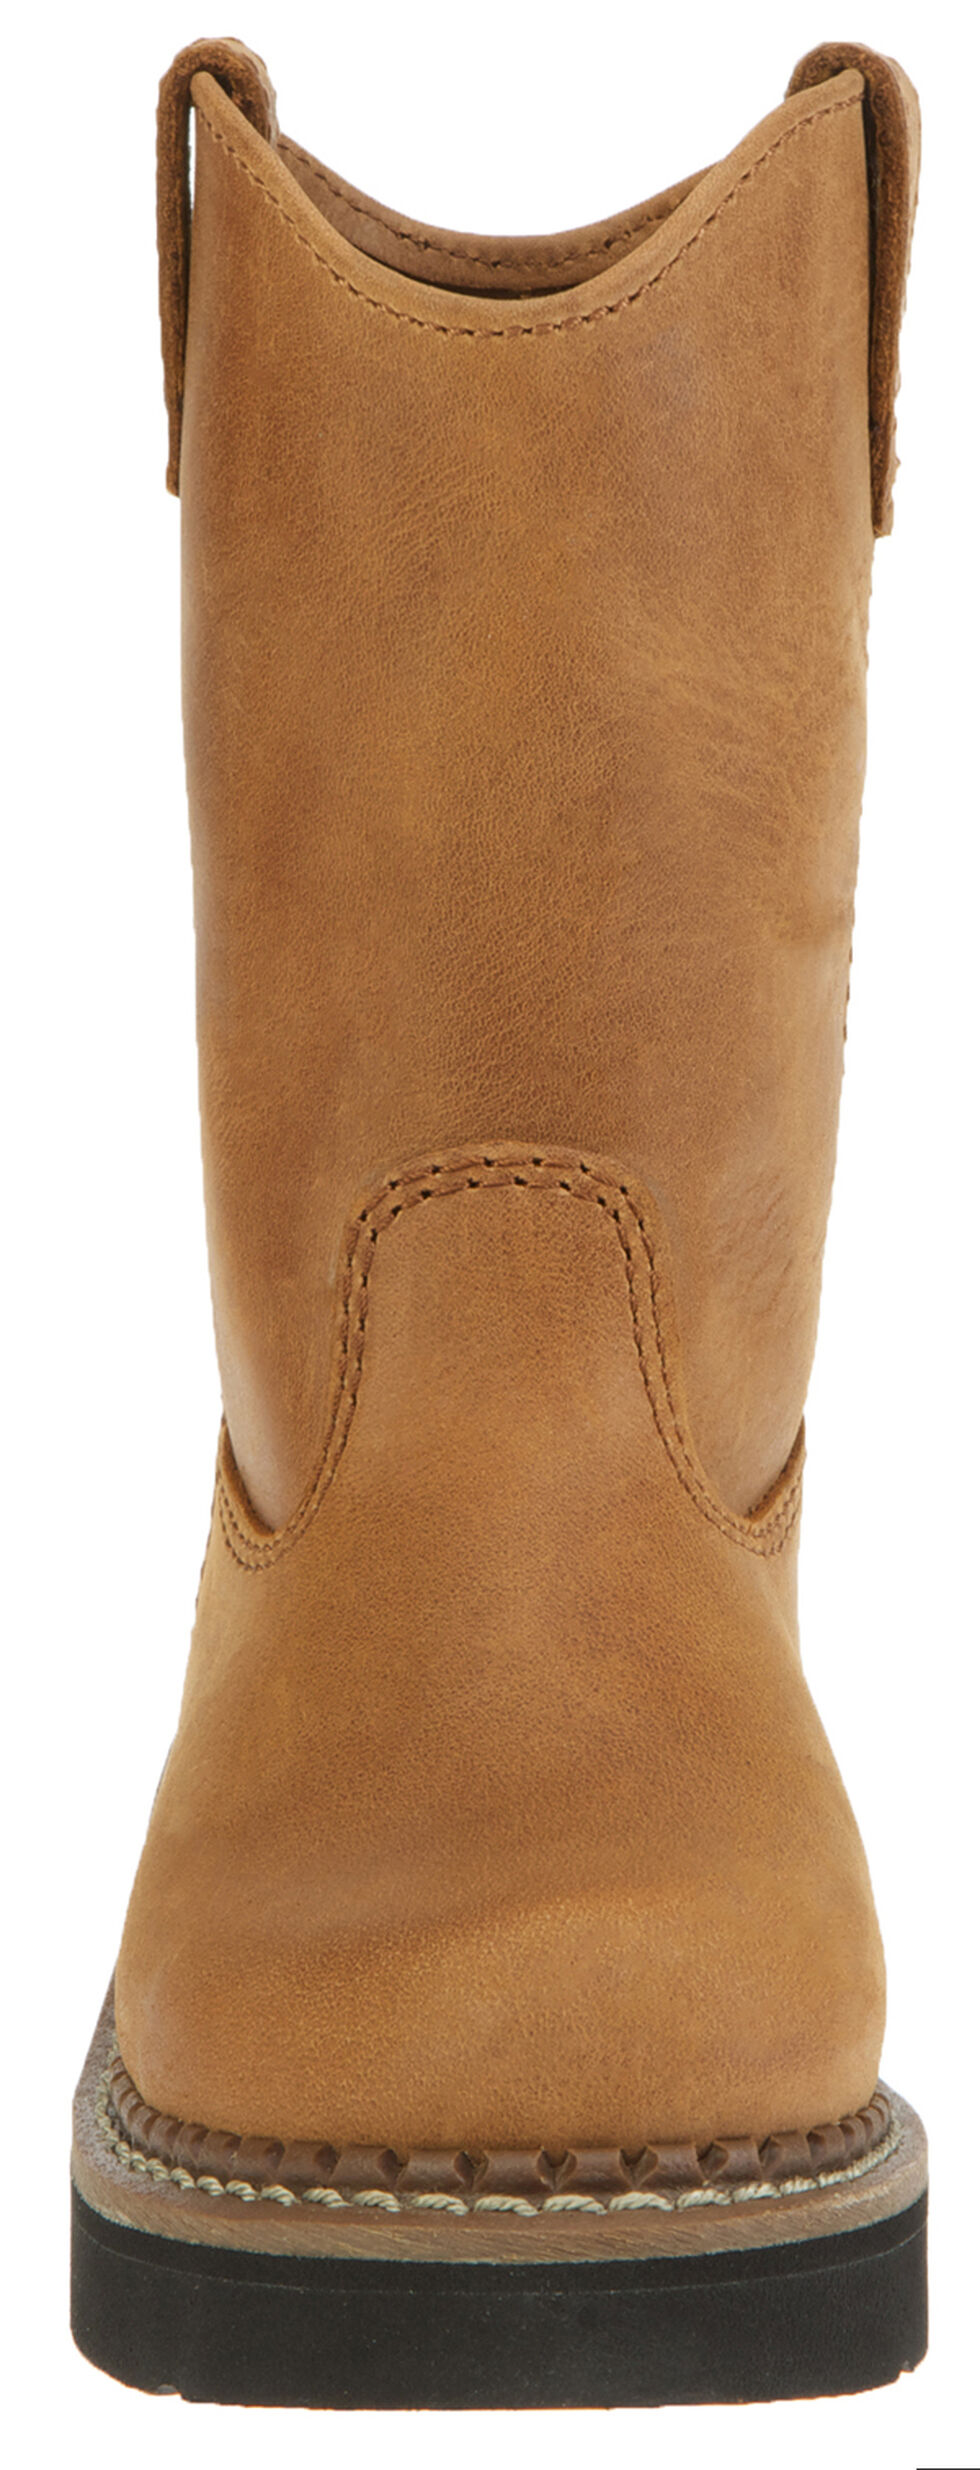 Georgia Youth Boys' Wellington Boots - Round Toe, Brown, hi-res